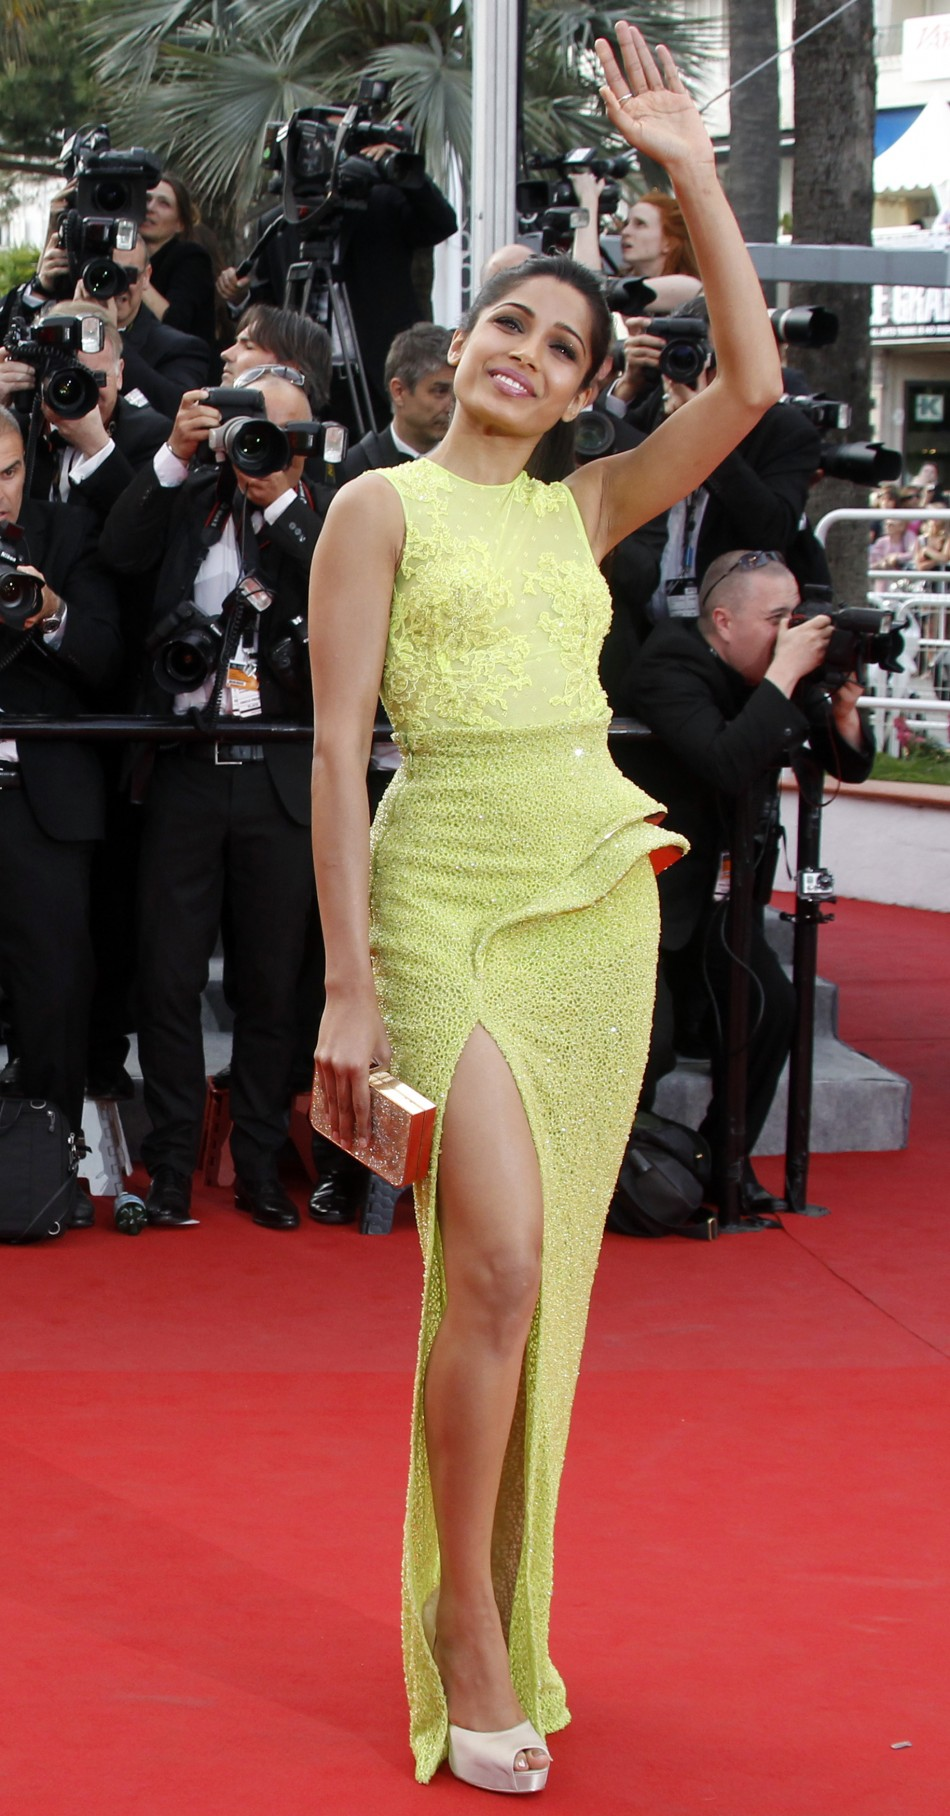 Actress Pinto arrives on the red carpet for the screeing of the film De rouille et dos at the 65th Cannes Film Festival